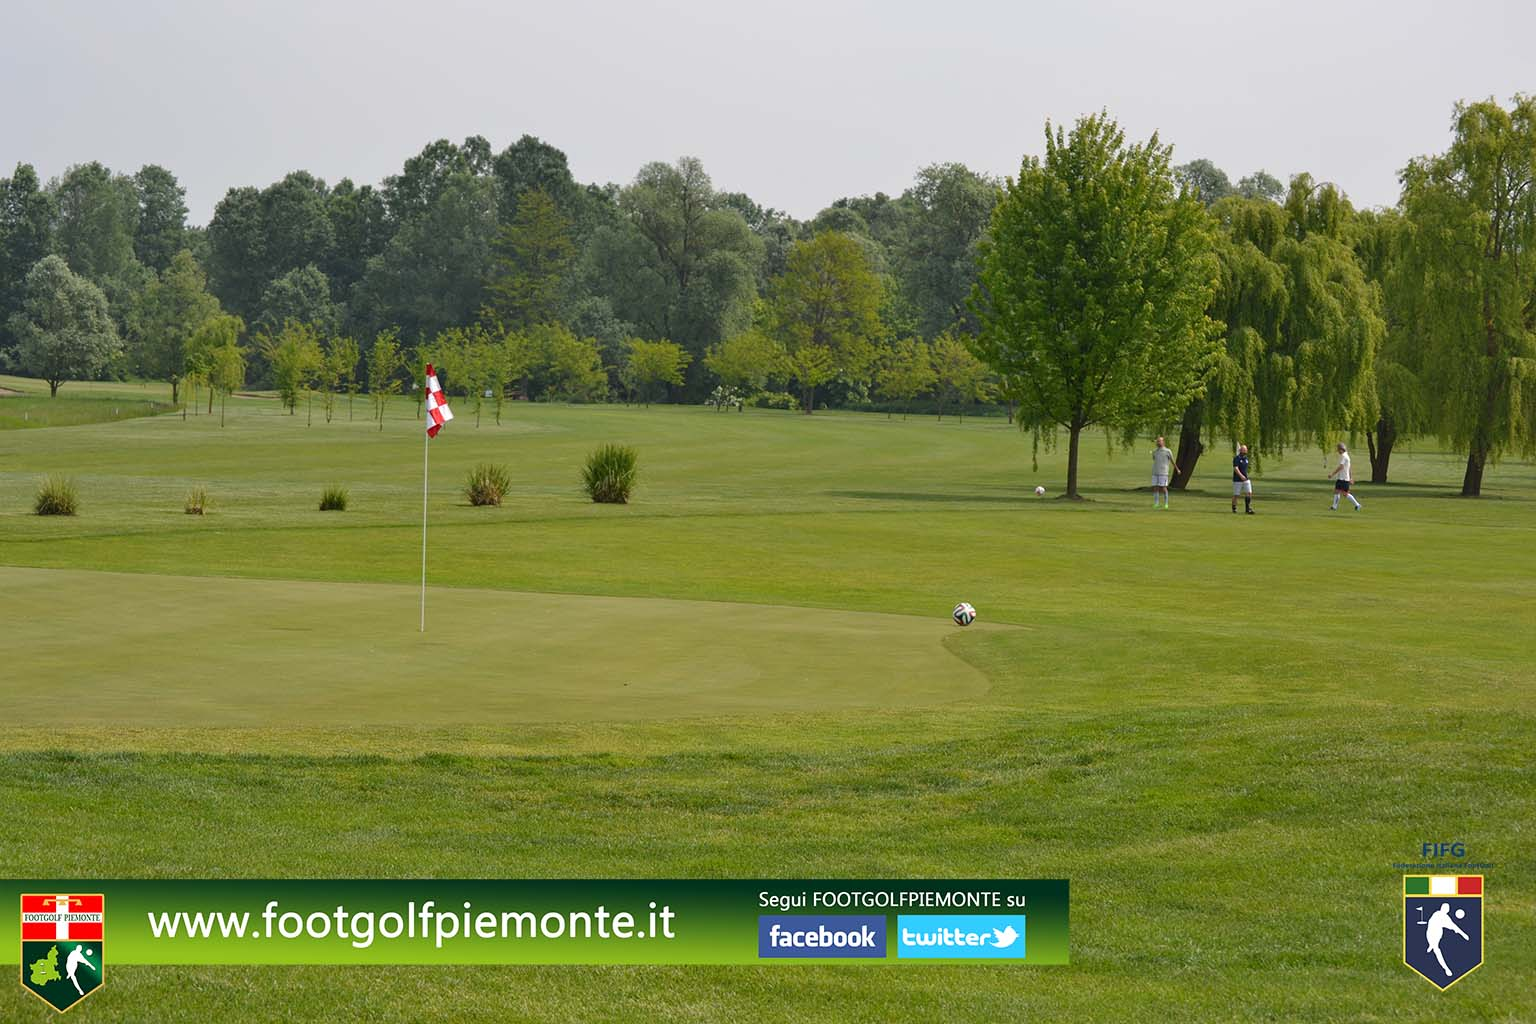 FOTO 9 Regions' Cup Footgolf Piemonte 2016 Golf Città di Asti (At) 30apr16-25